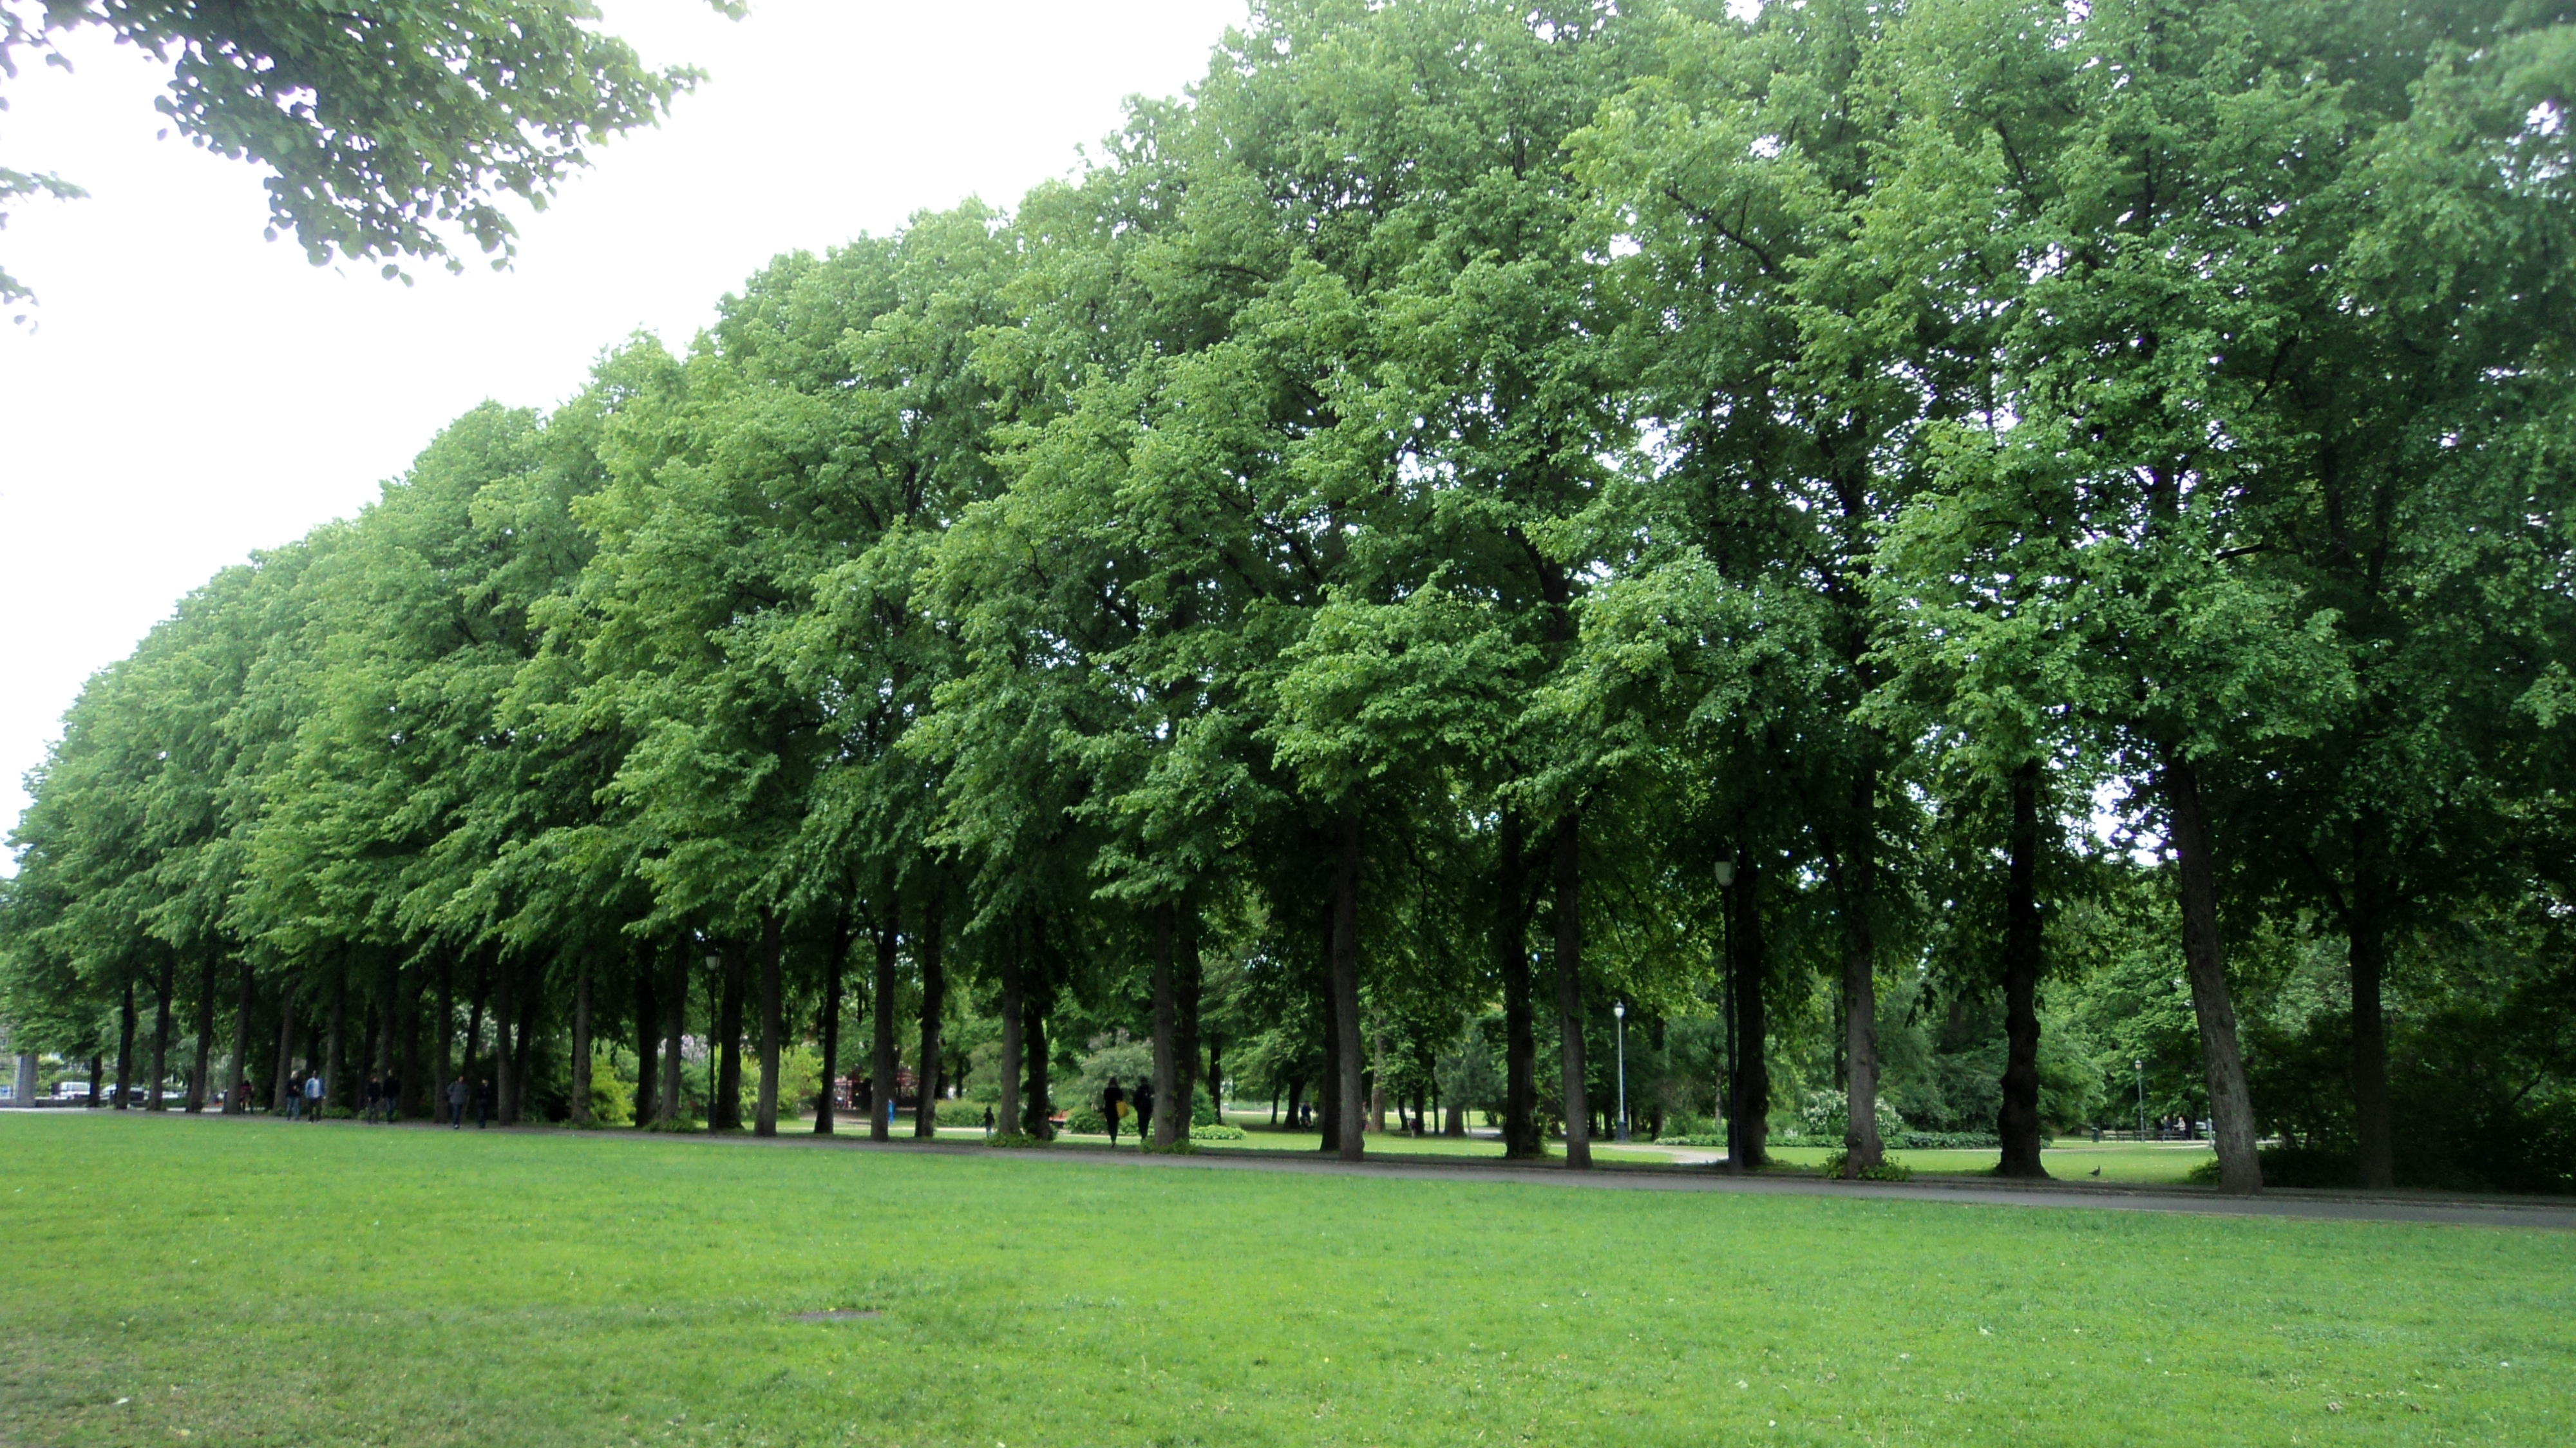 File:Frogner Park Trees.JPG - Wikimedia Commons